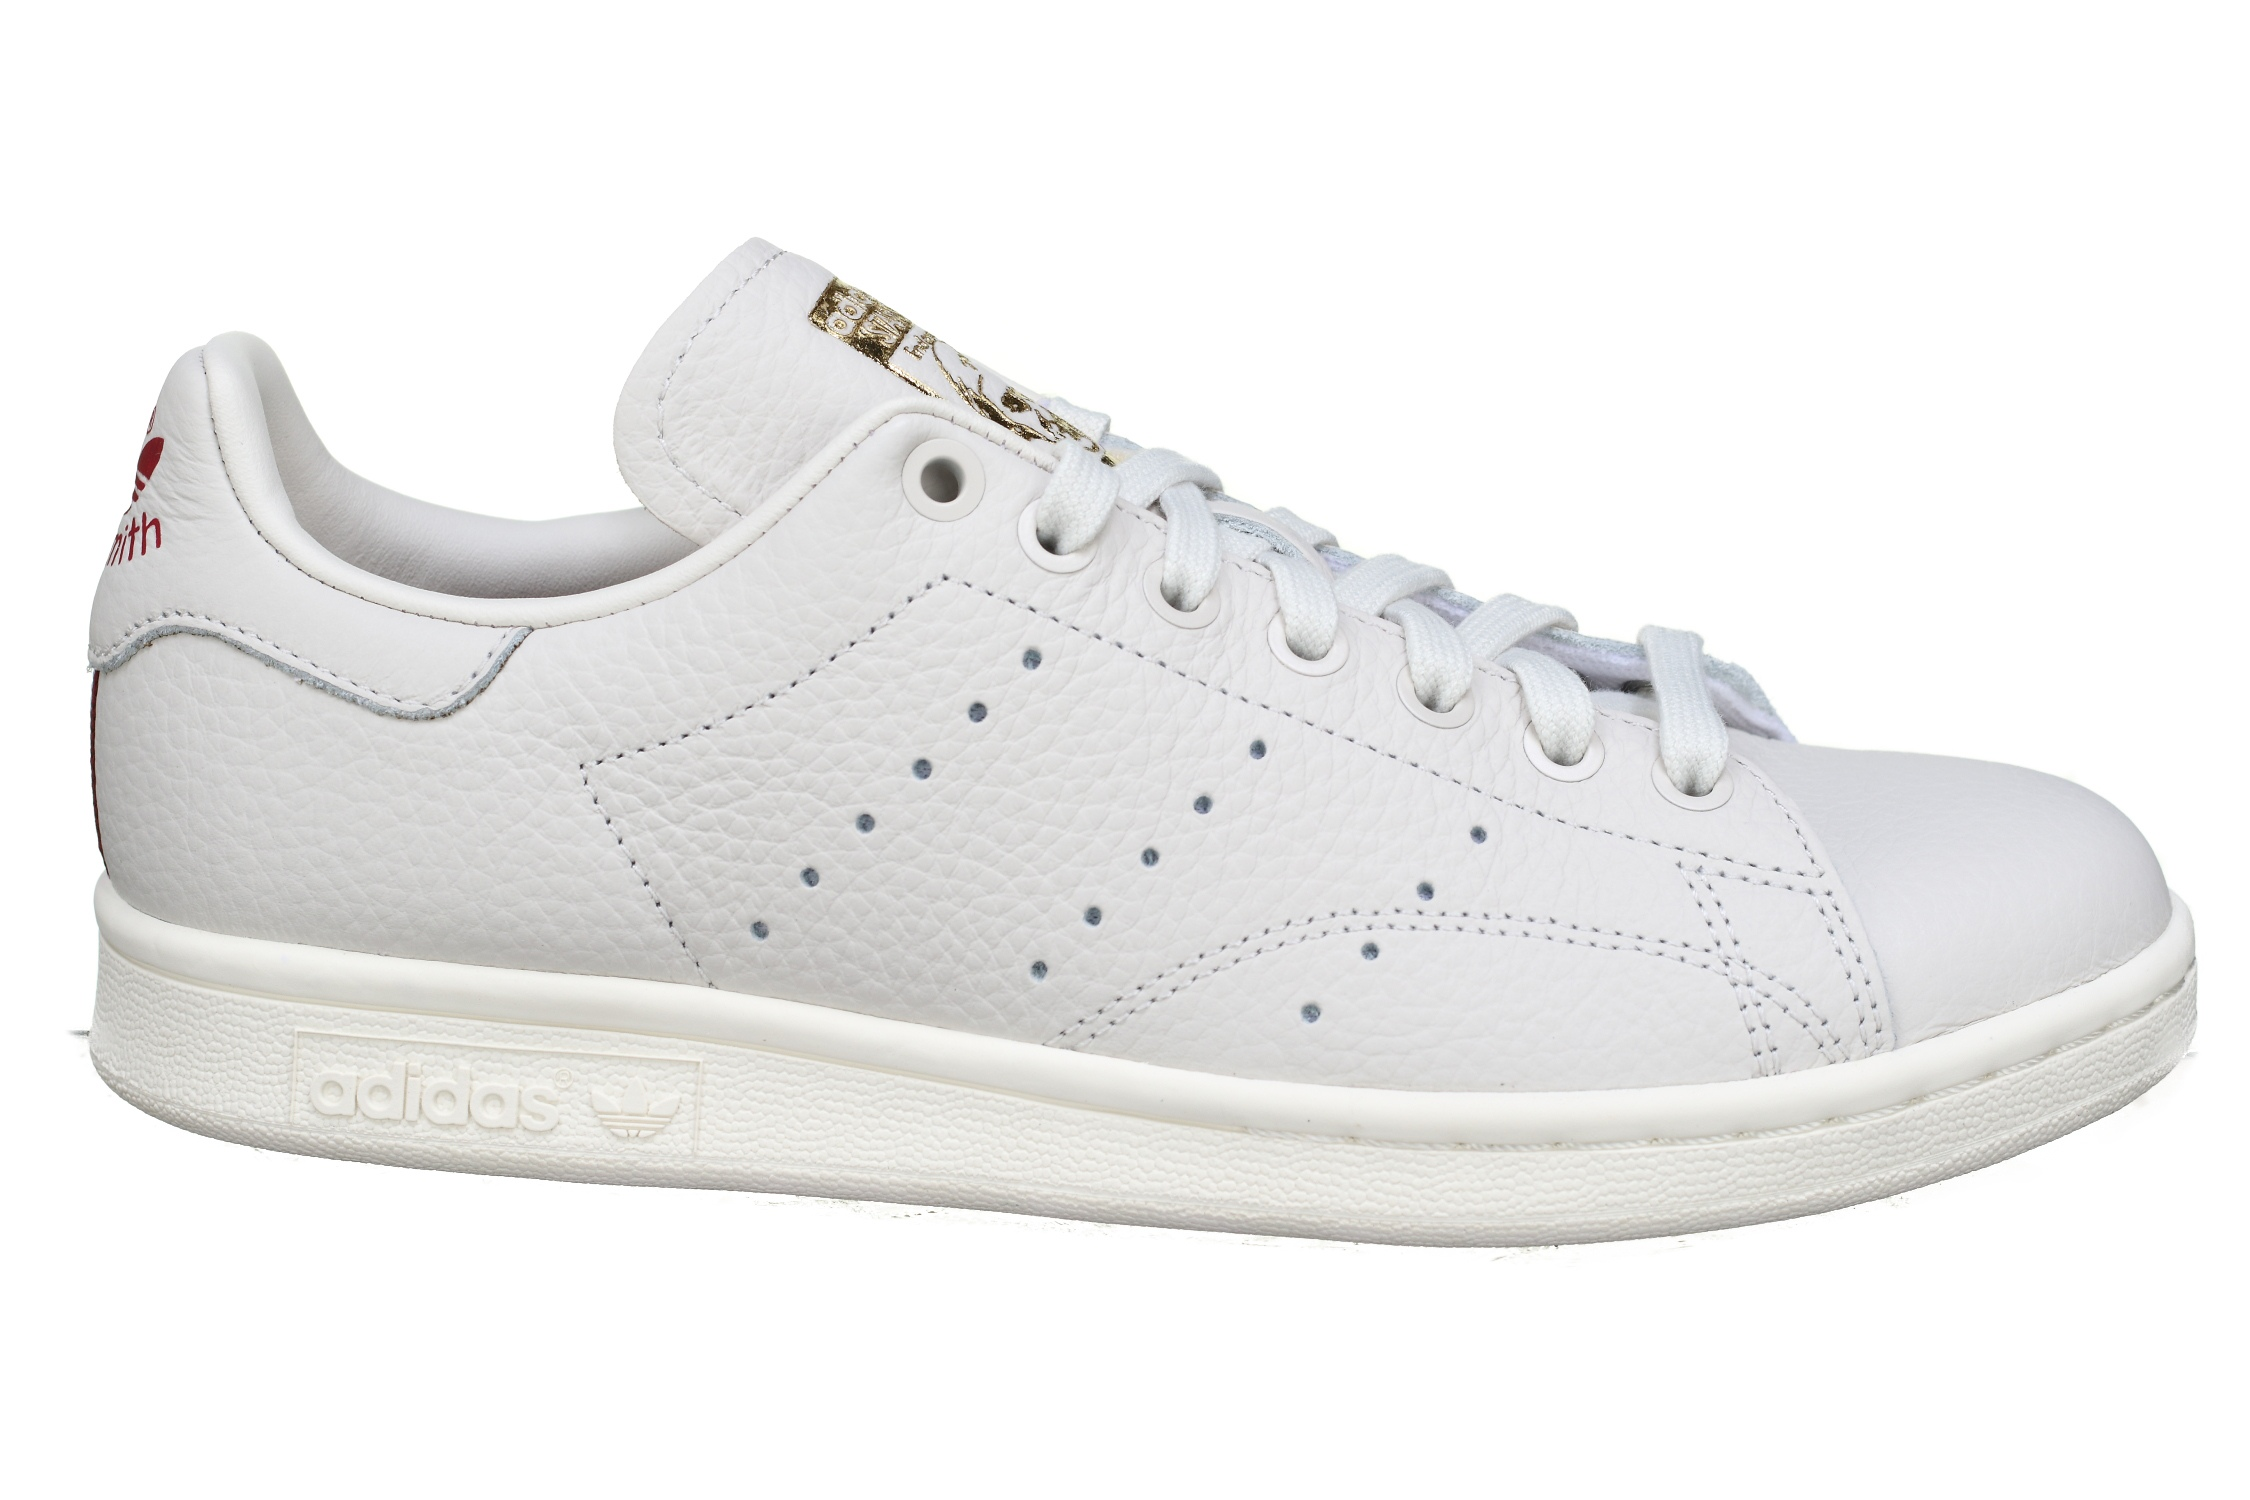 http://www.leadermode.com/164714/adidas-stan-smith-w-bd8065-beige.jpg